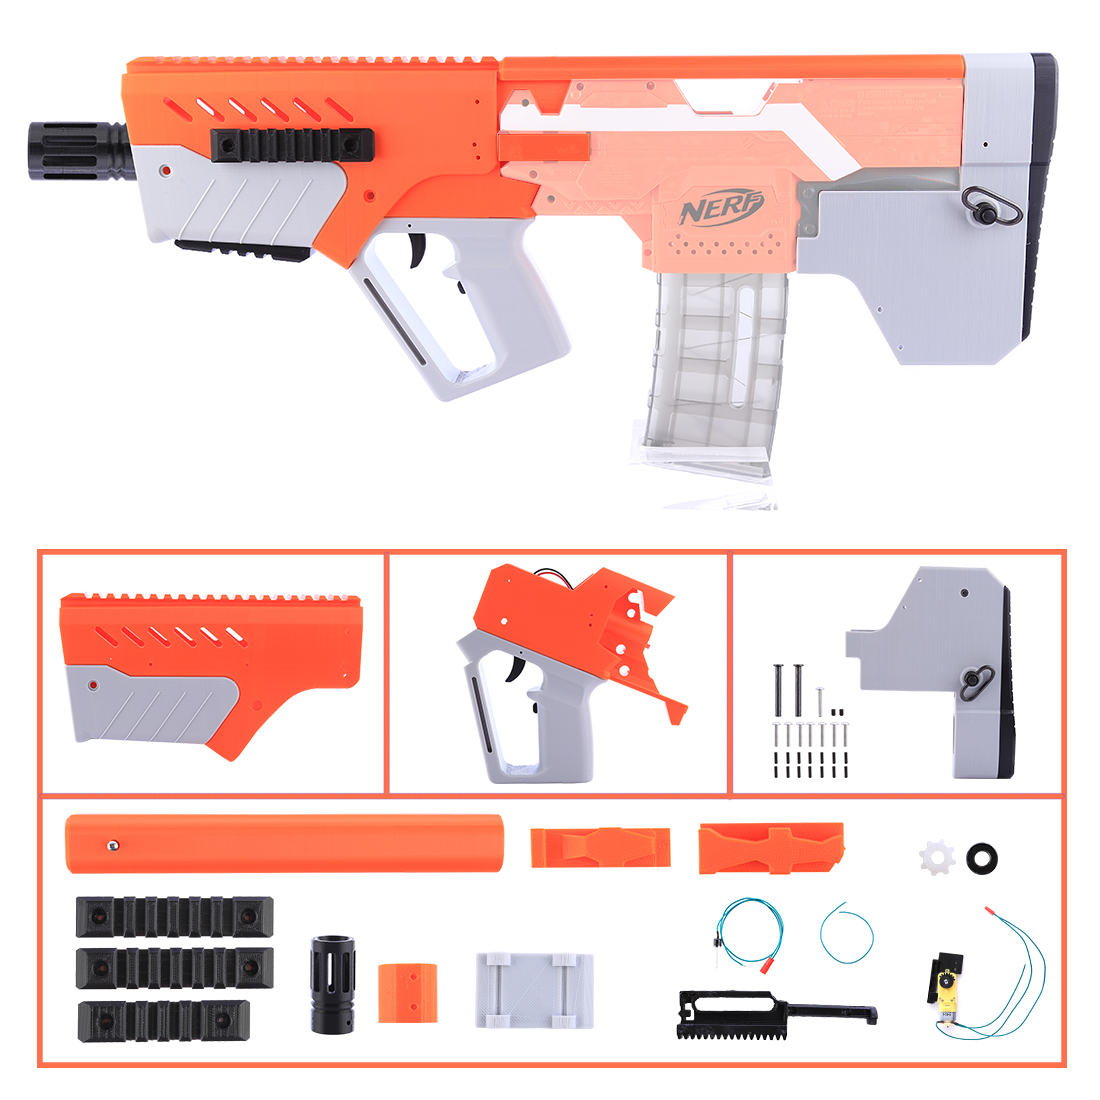 XSW STF Appearance Fully Automatic MXD-1 Refit Kit for Nerf stryfe XSW STF Appearance Fully Automatic MXD-1 Refit Kit for Nerf stryfe